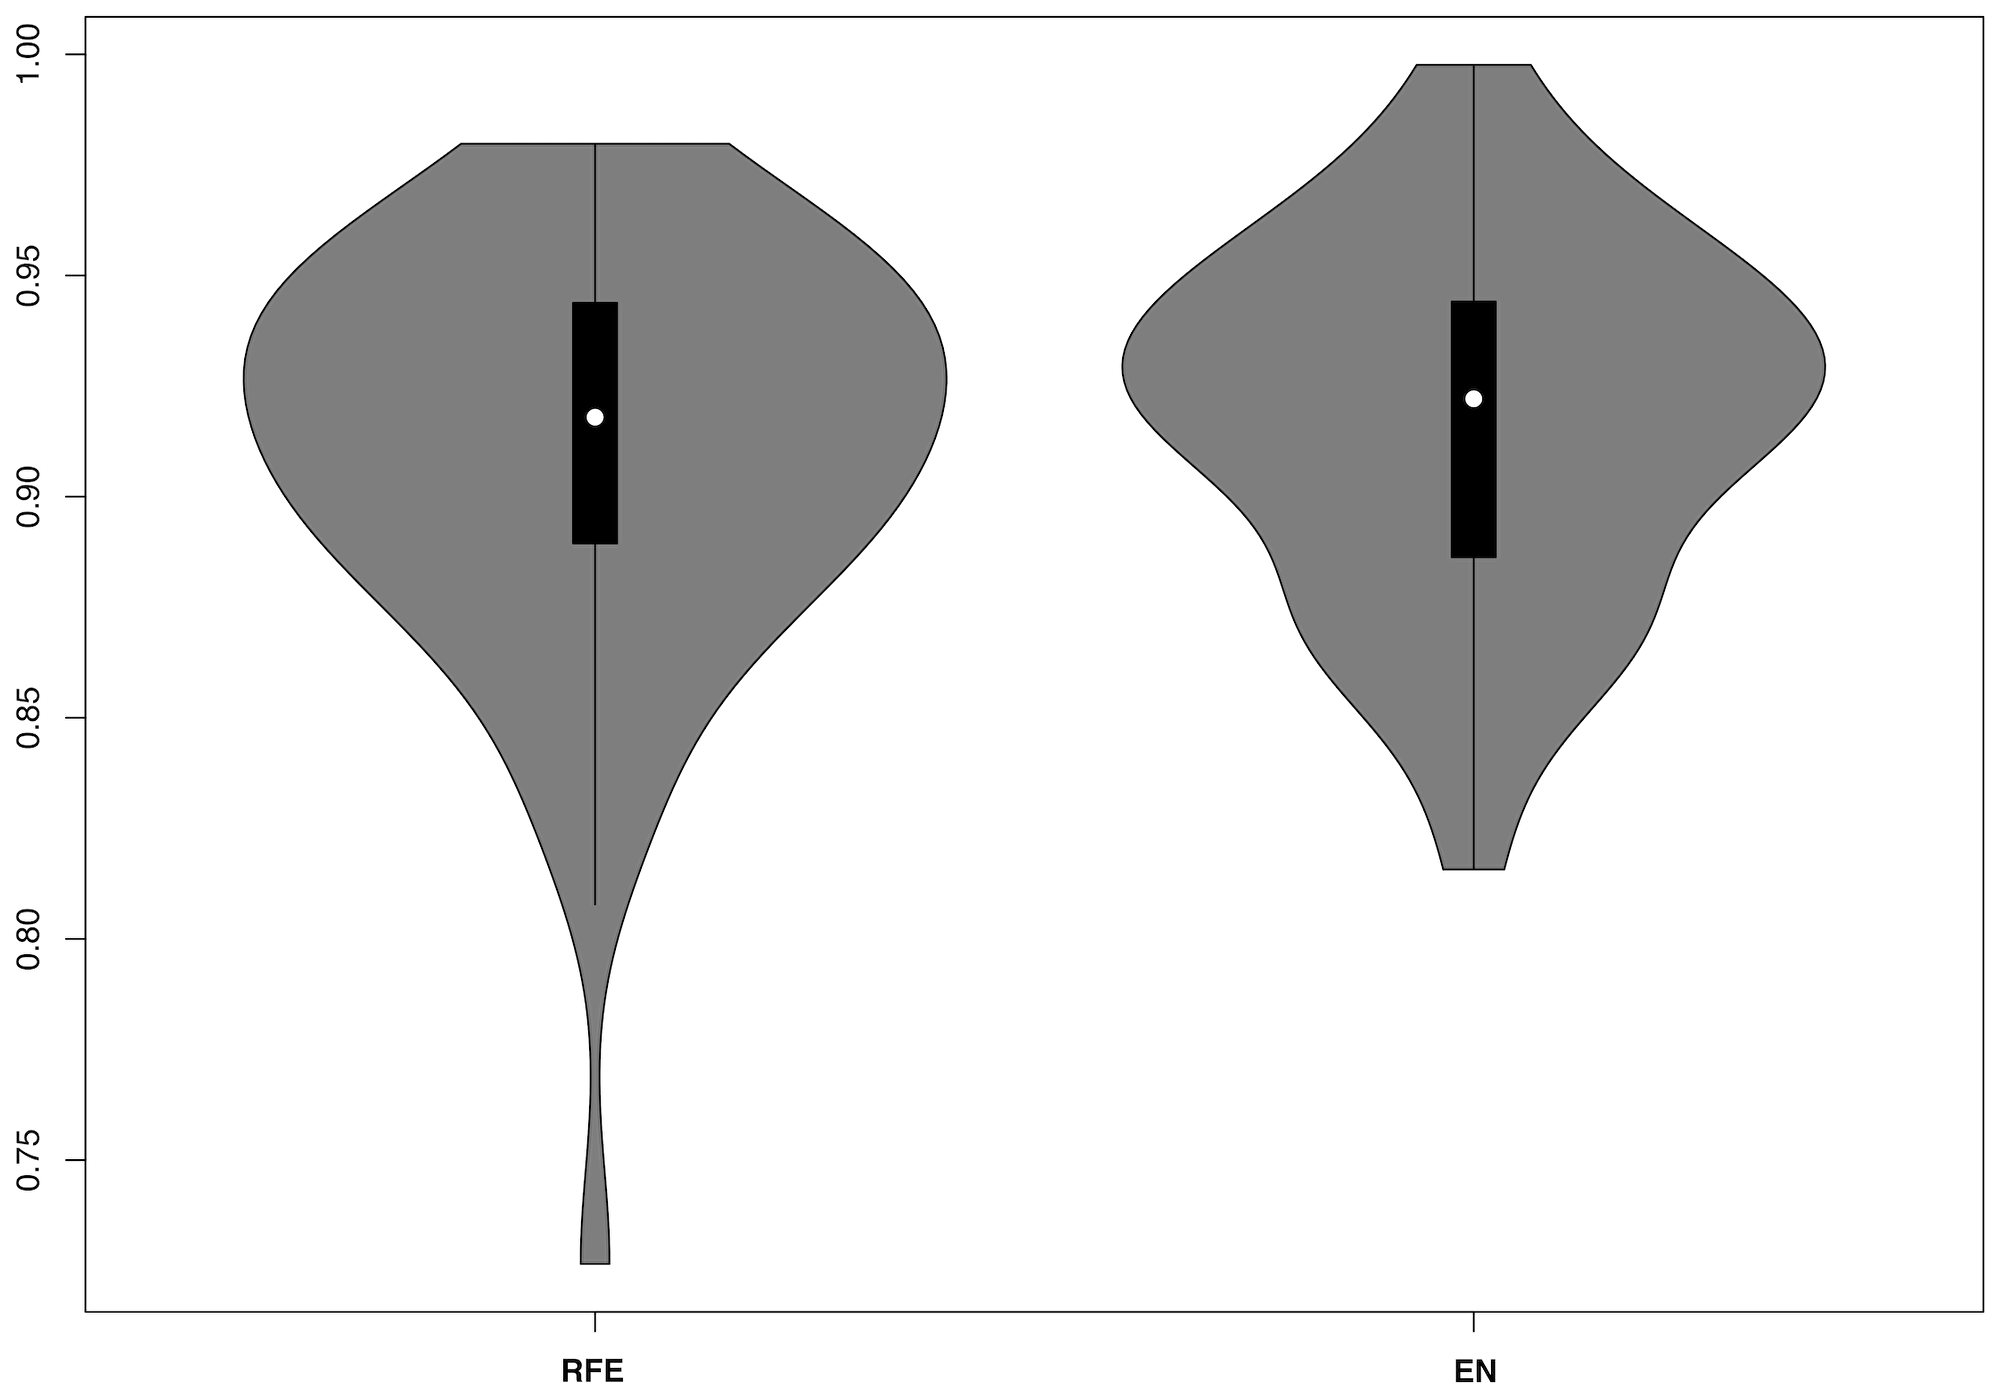 Violin plots for RF model AUCs including nested recursive feature elimination (RFE) or elastic net (EN) regression.